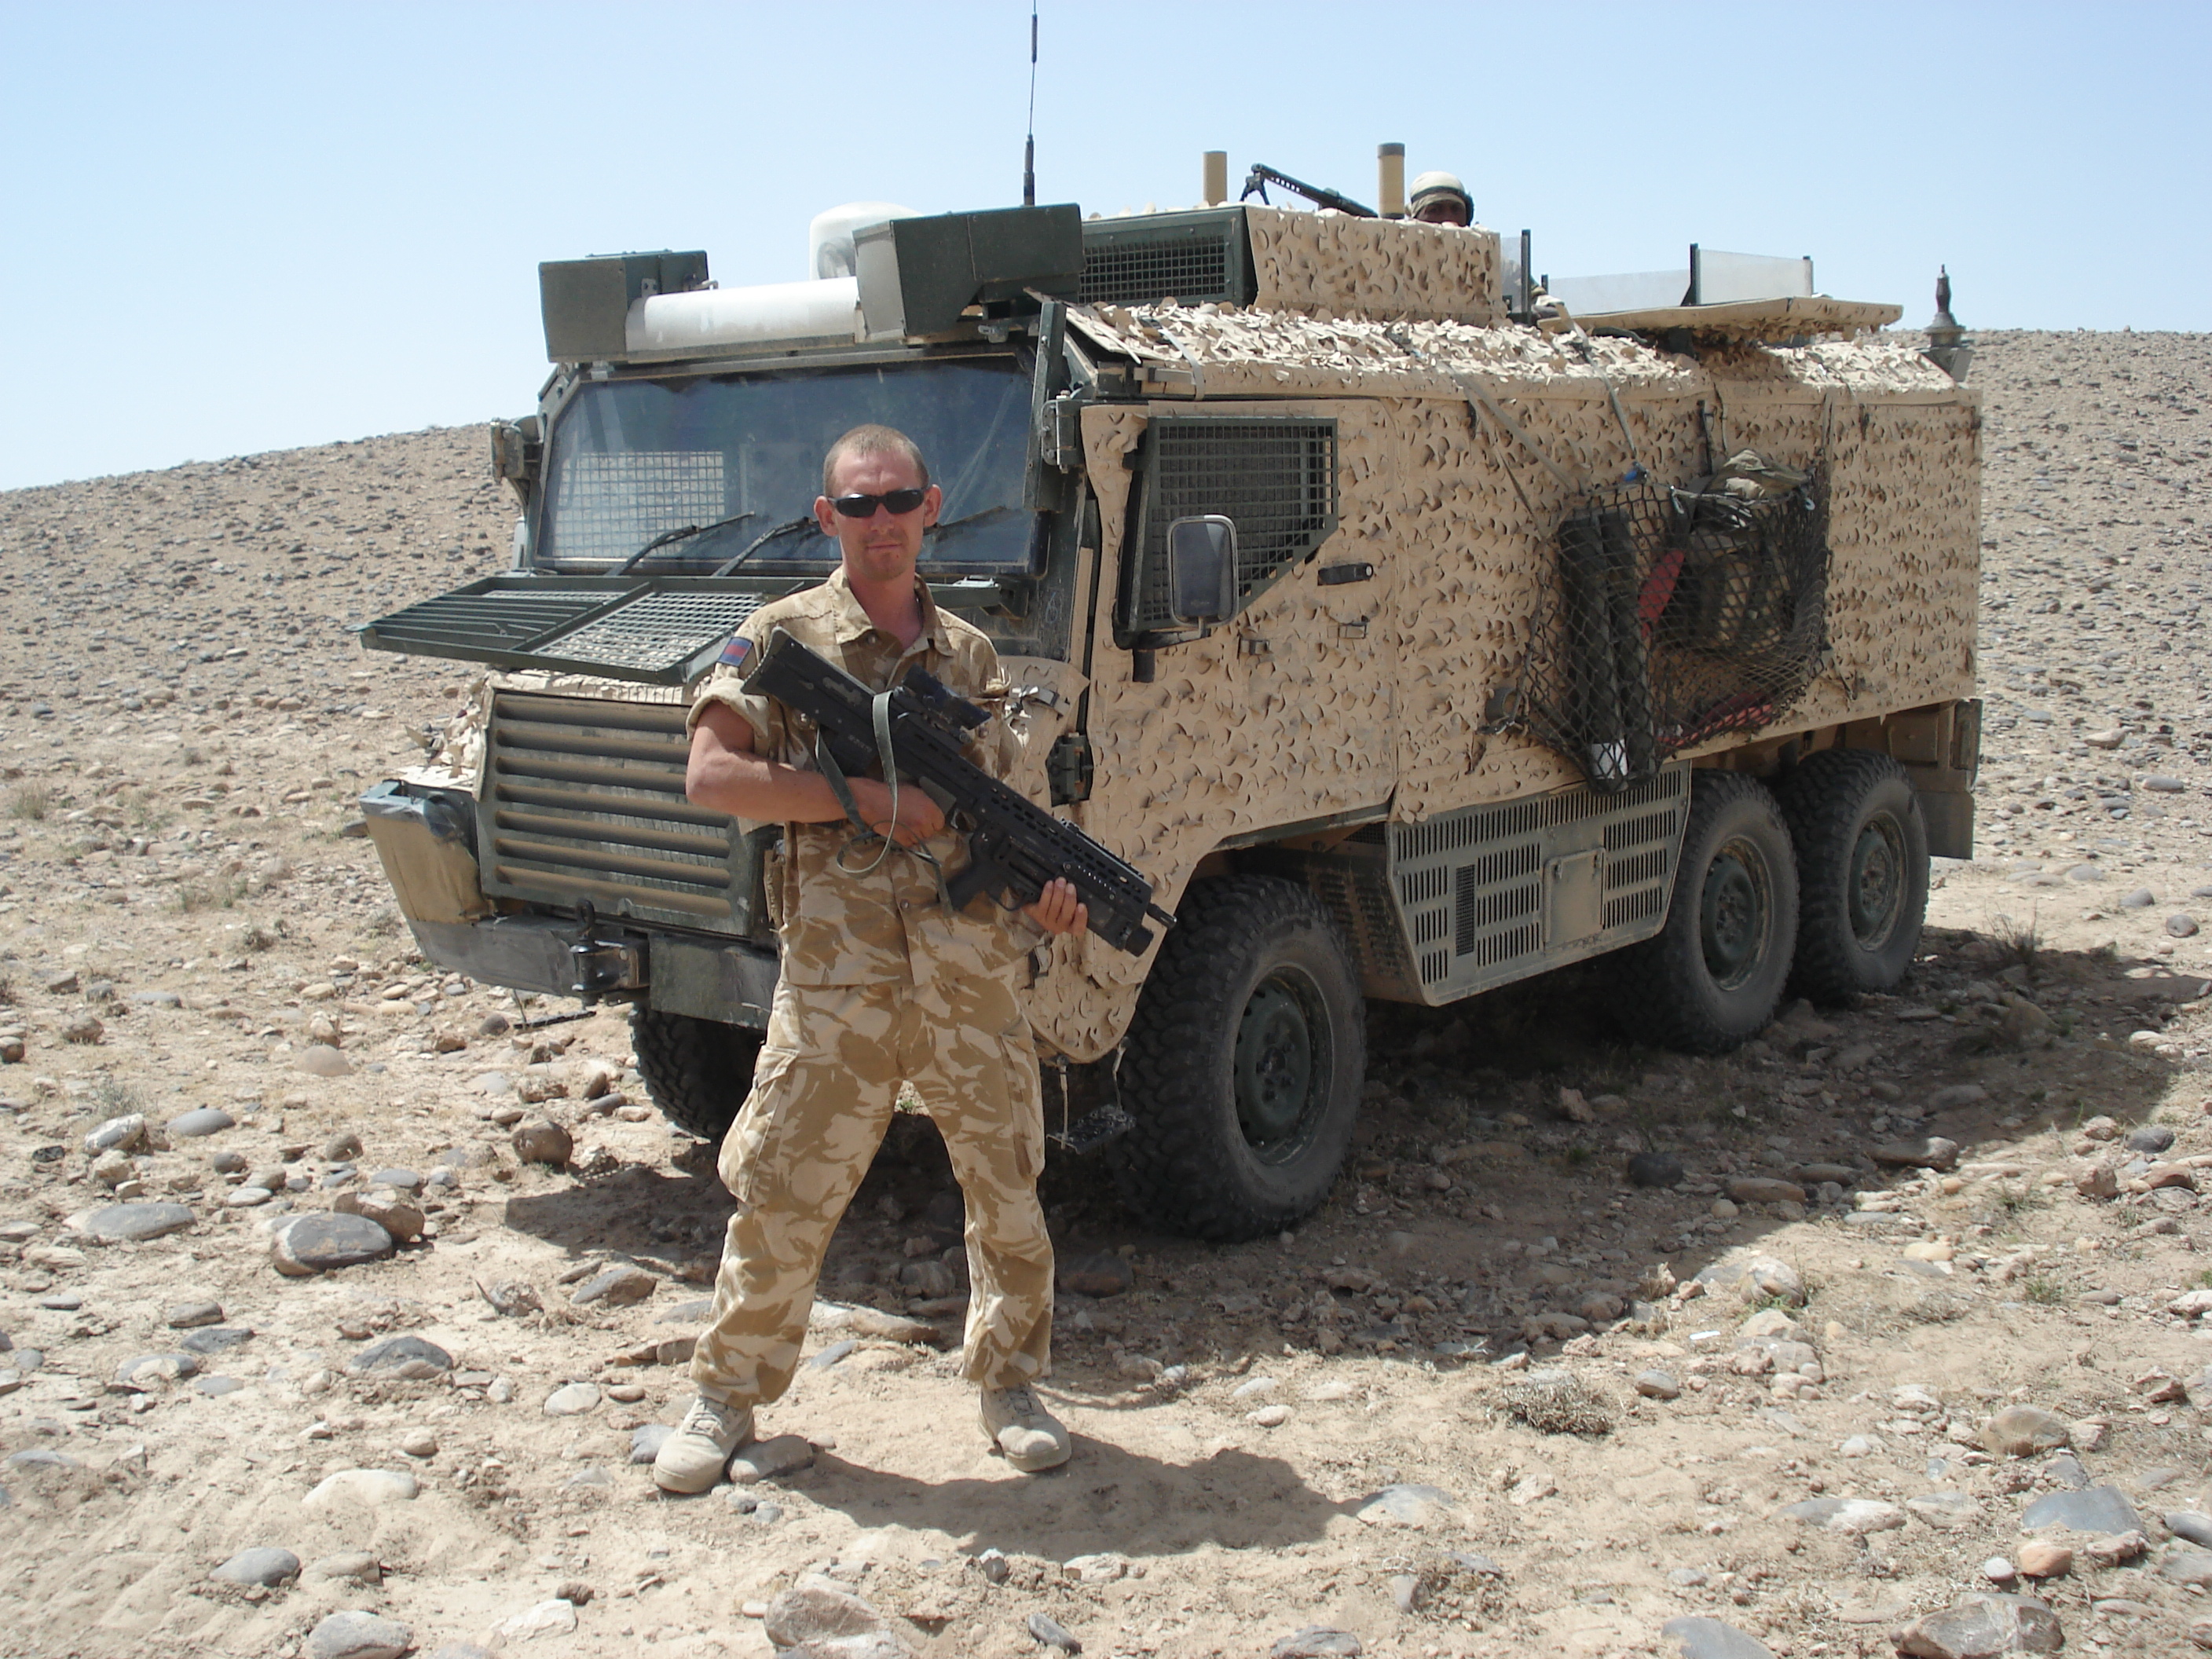 Andrew Powell in Afghanistan in 2007